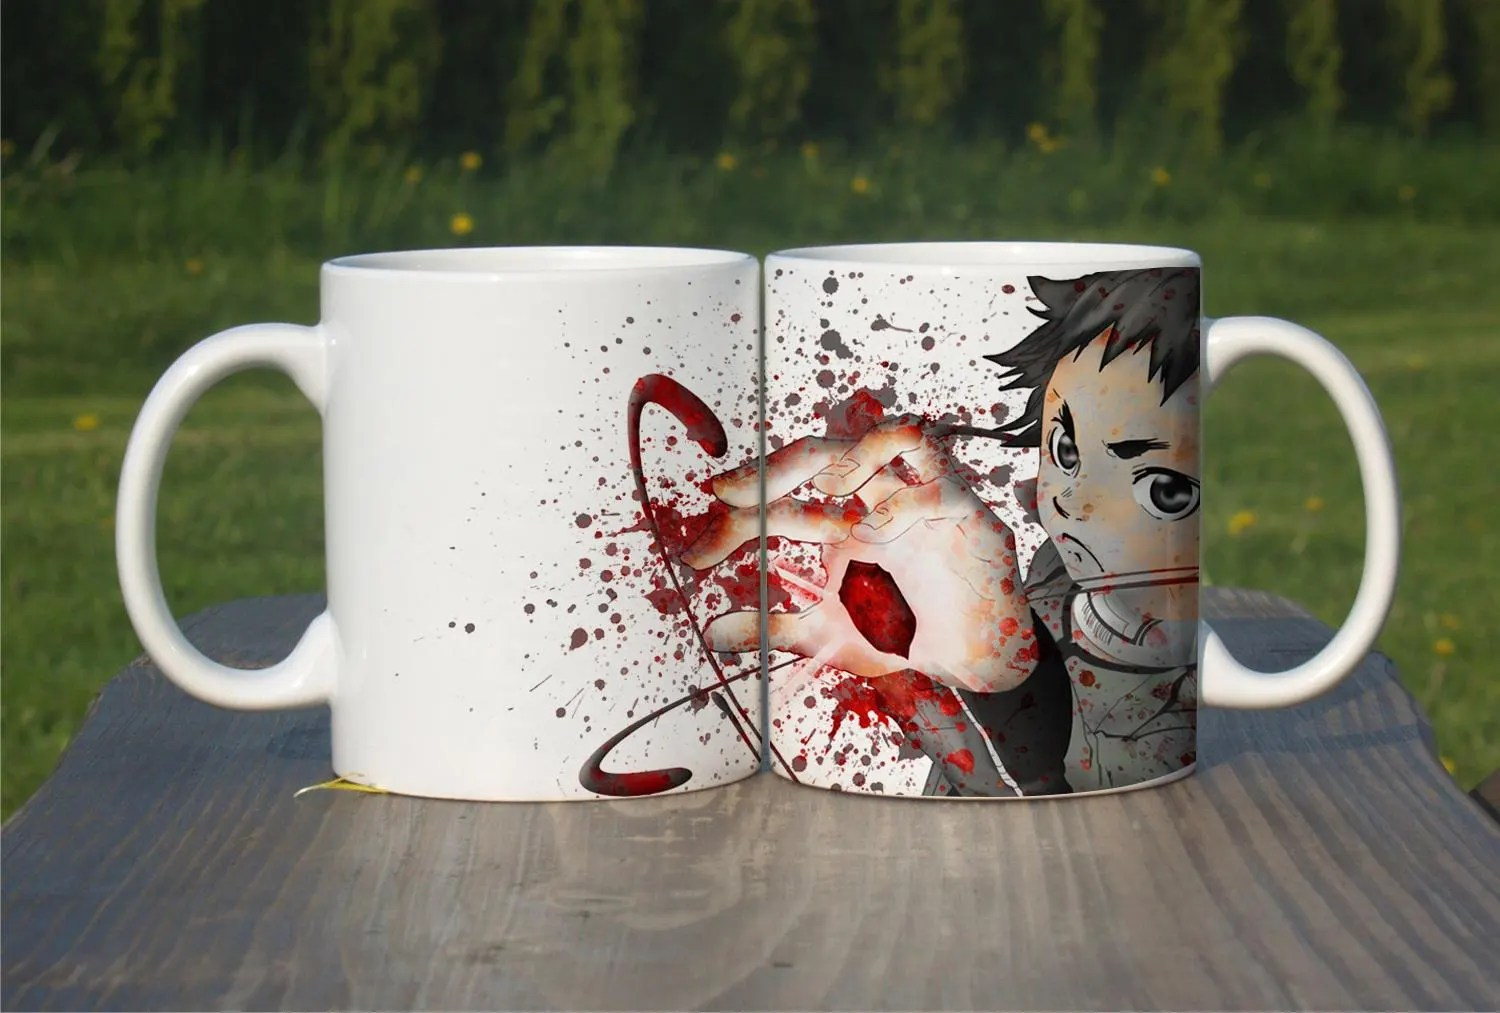 Highschool Dxd Bettwäsche Deadman Wonderland Inspired Coffee Mug Shiro Tea Cup Color Changing Heat Magic Mug Unique Design Gift Ceramic 11oz Watercolor M256